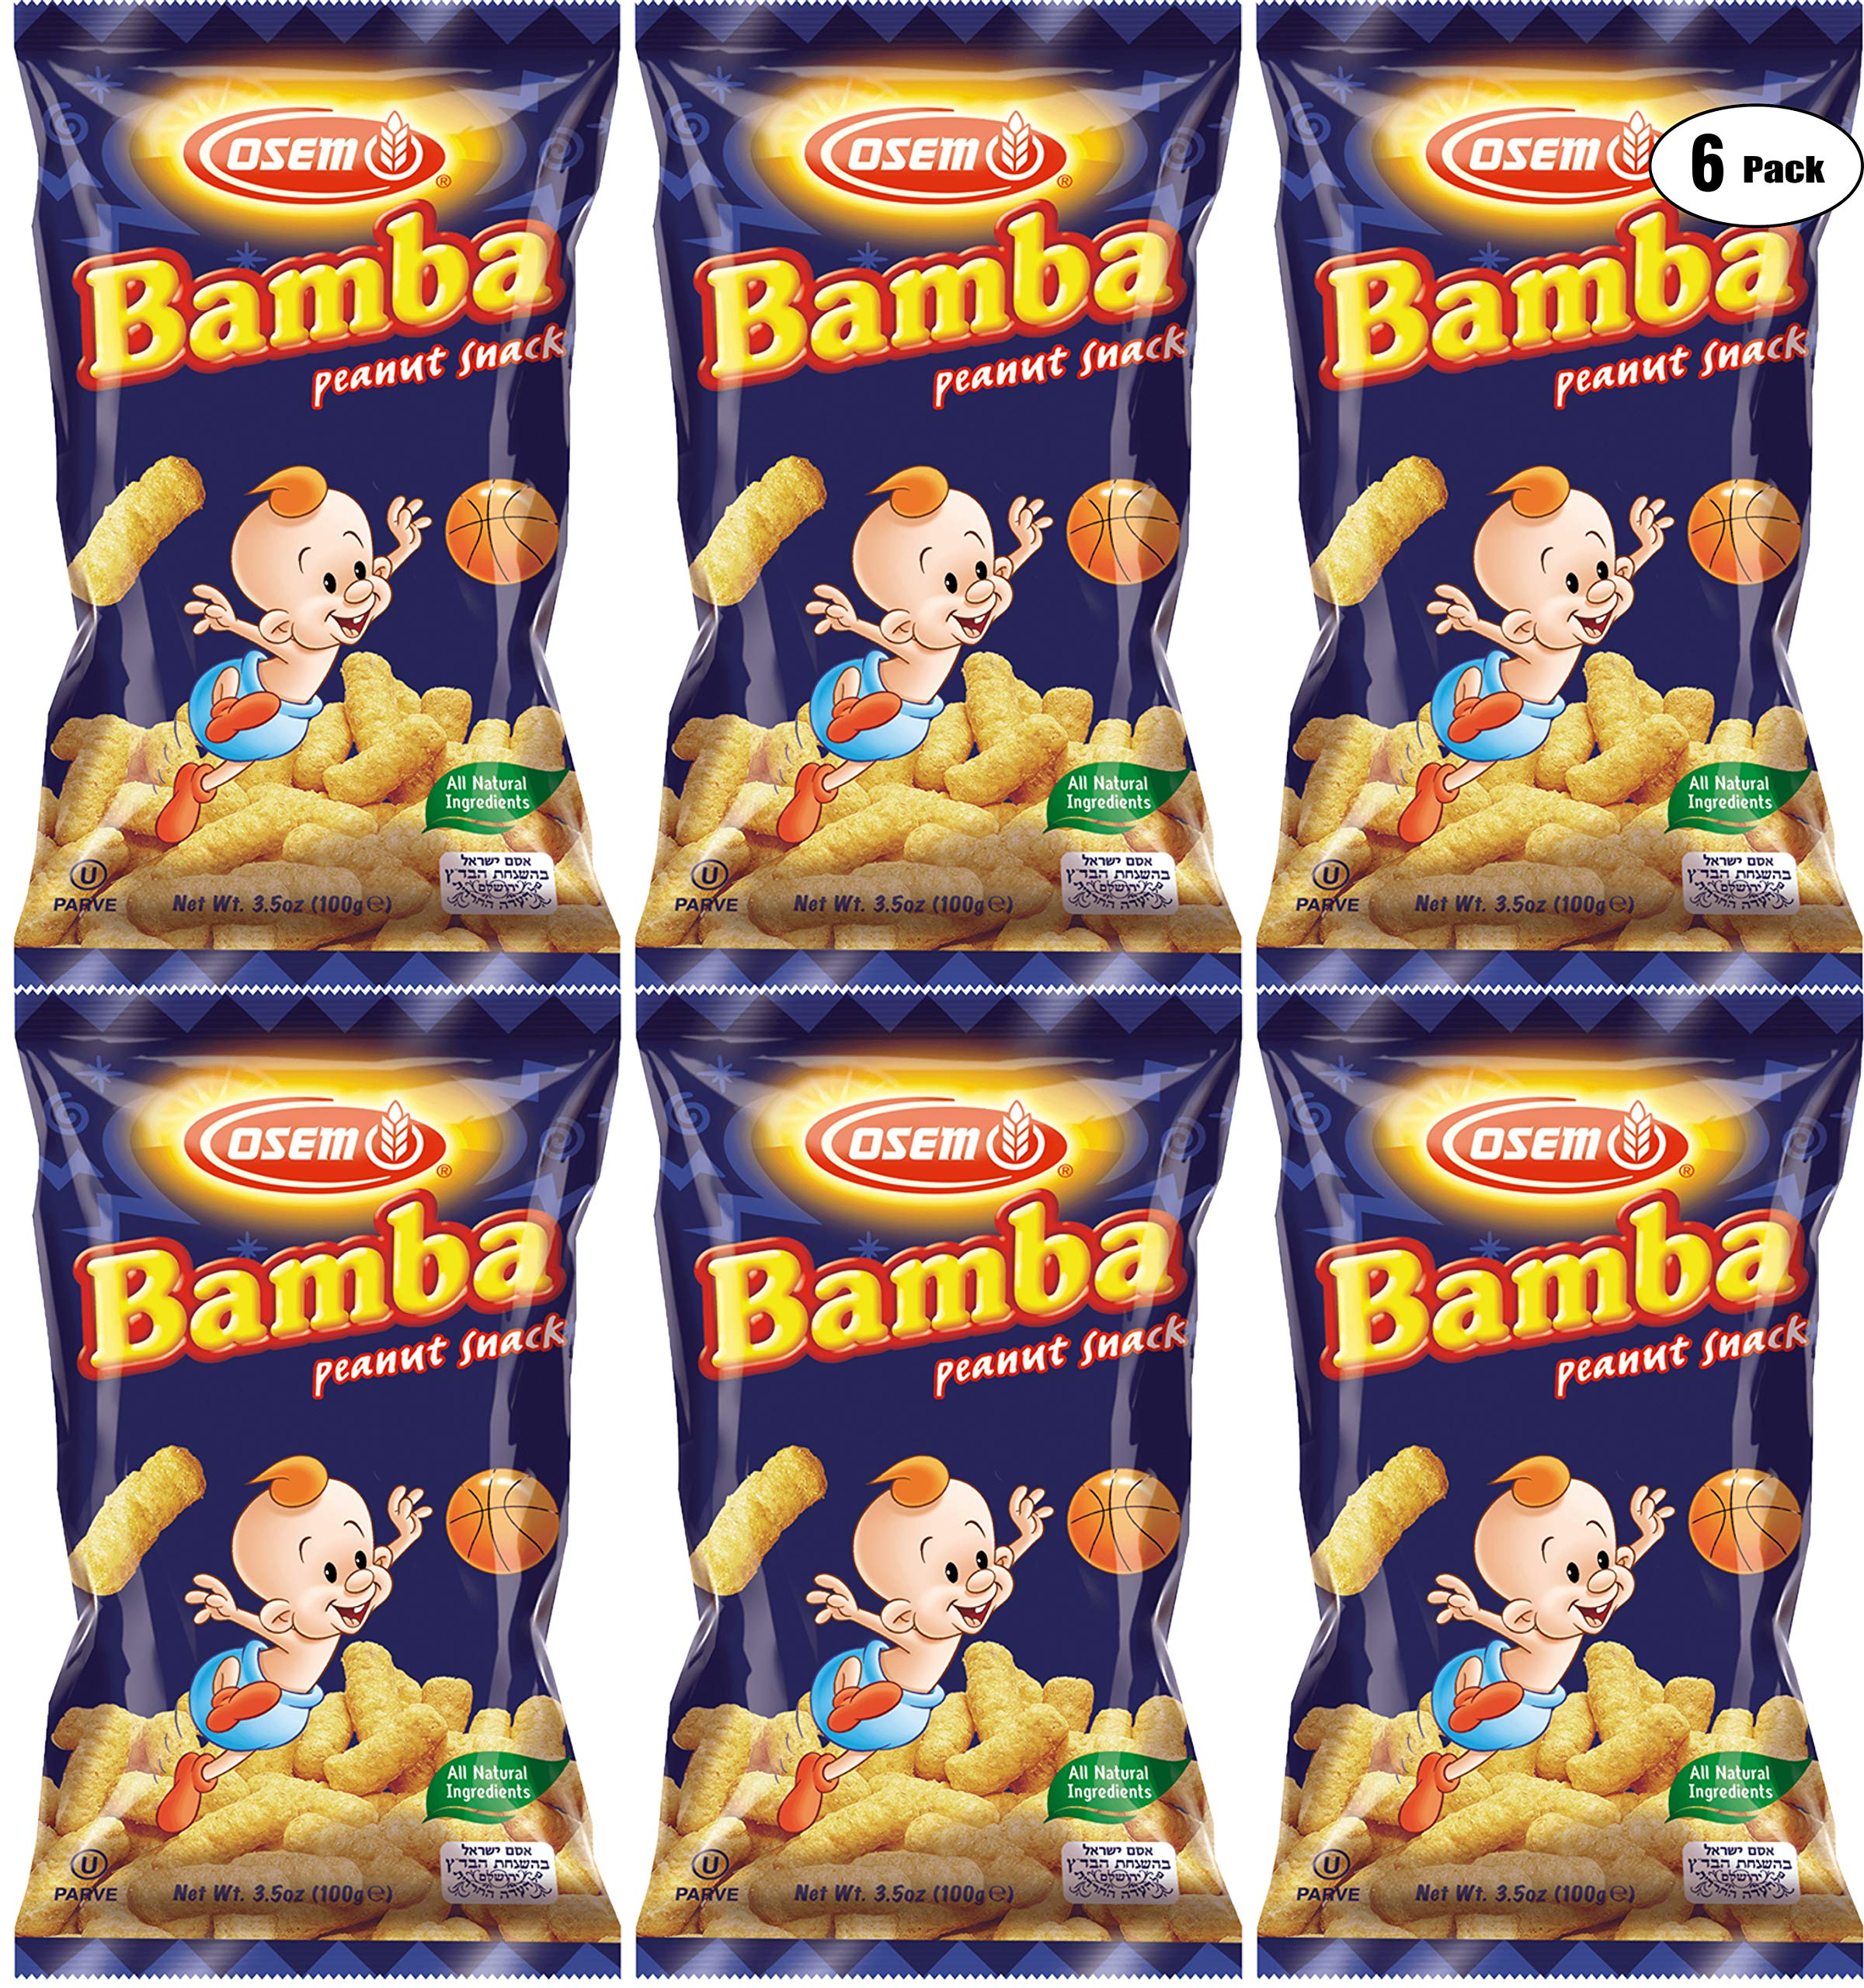 Bamba Peanut Butter Snacks All Natural Peanut Butter Corn Puff Snack (Pack of 6, 3.5oz Bags)